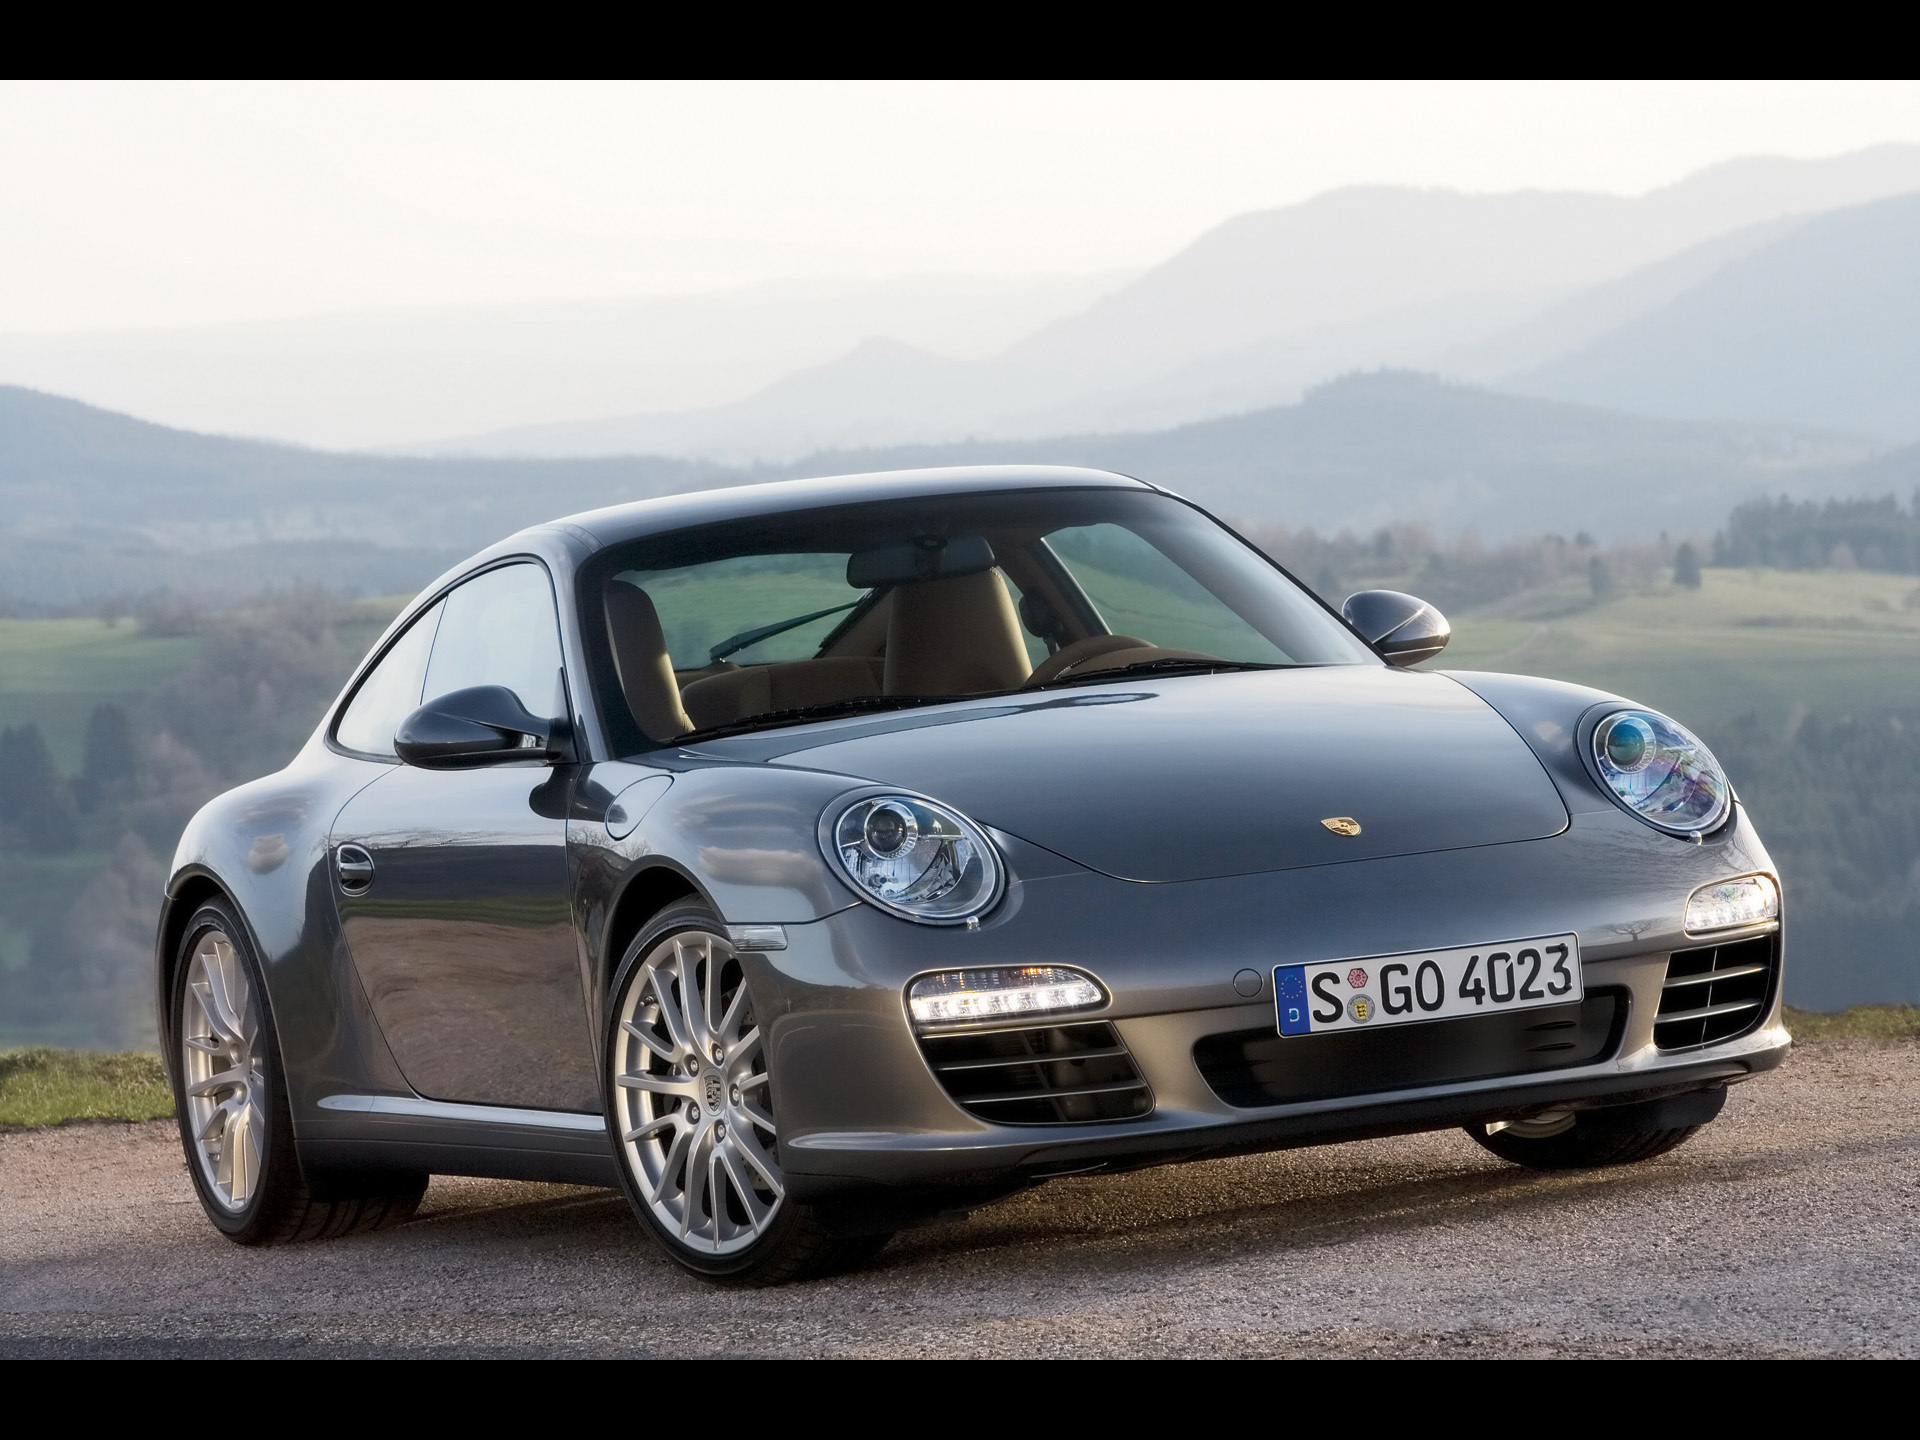 porsche 911 carrera 4s porsche wallpaper 19655561 fanpop. Black Bedroom Furniture Sets. Home Design Ideas